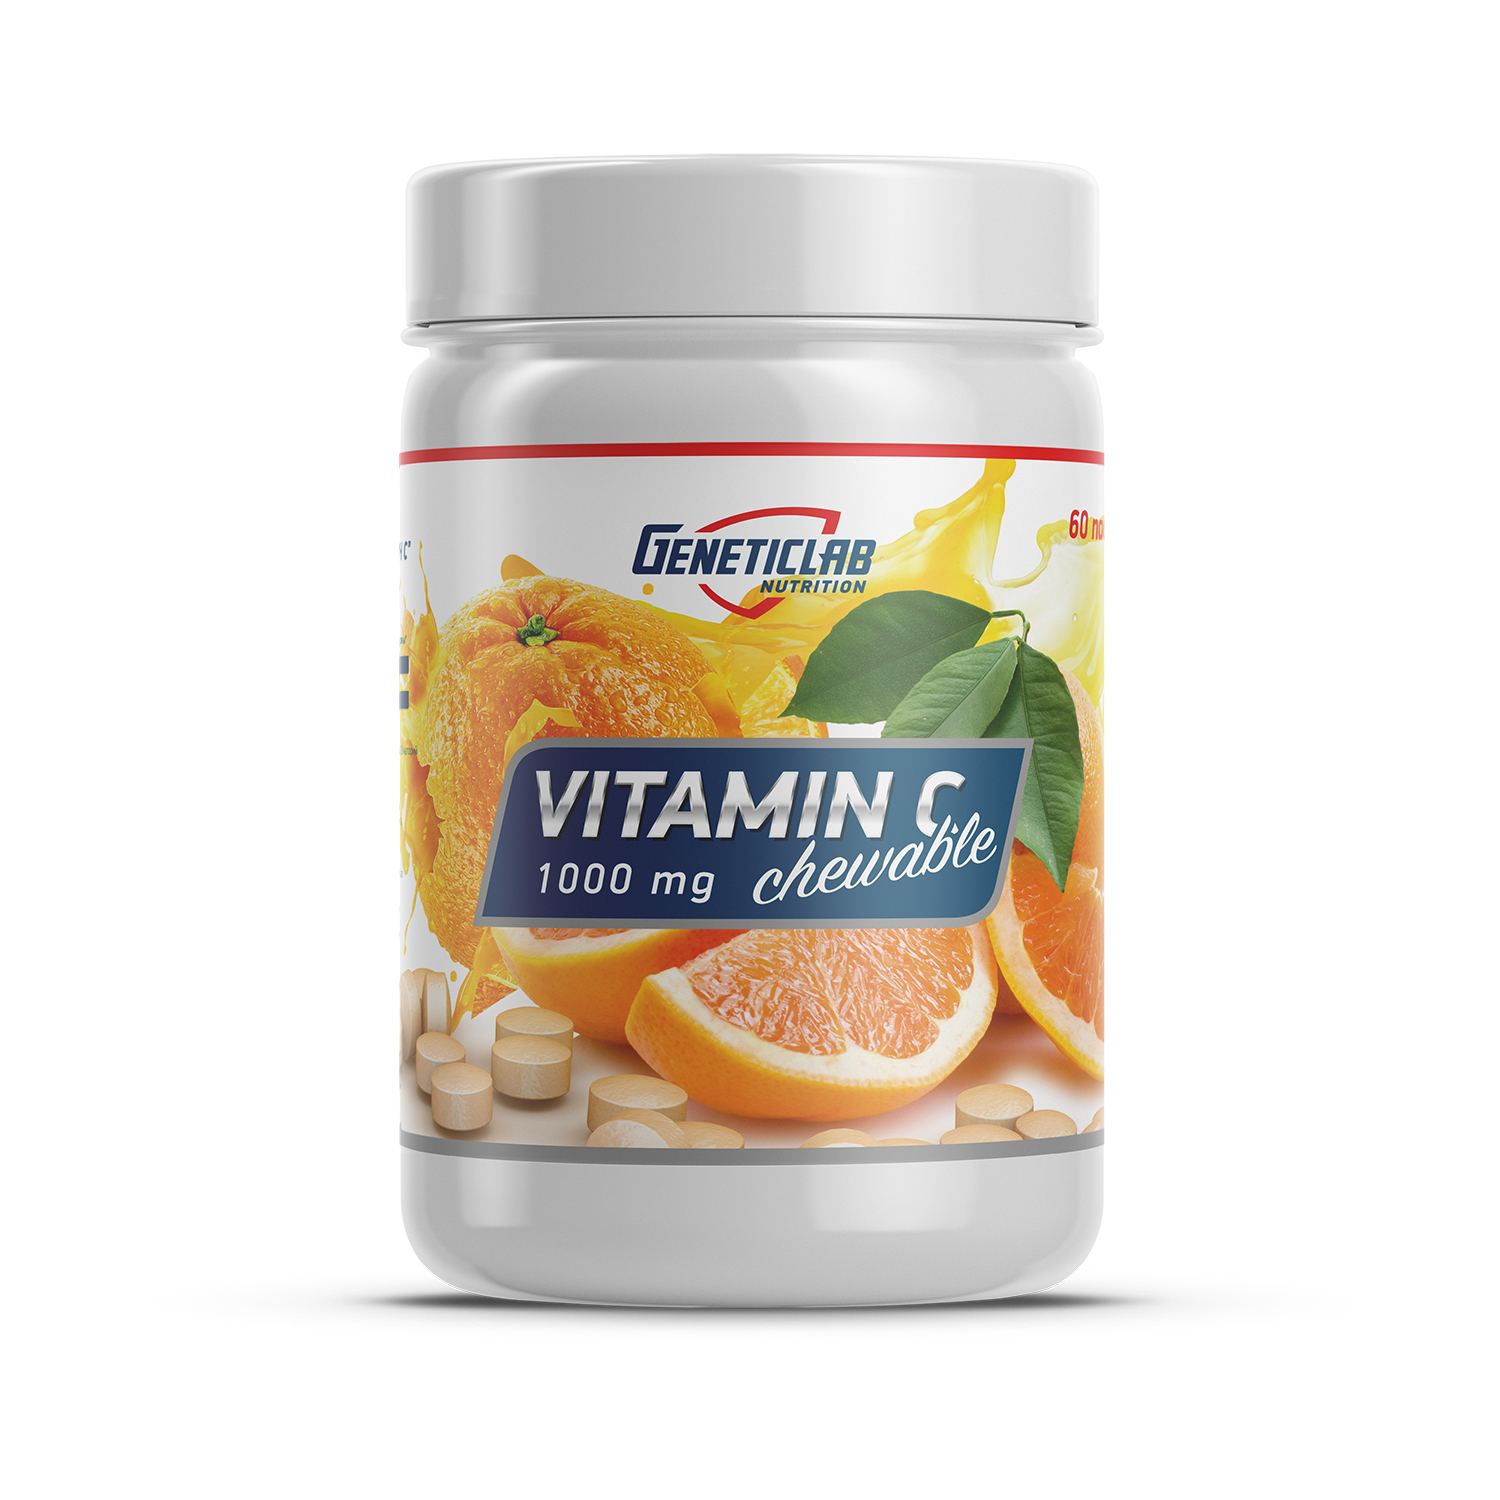 Vitamin C Chewable